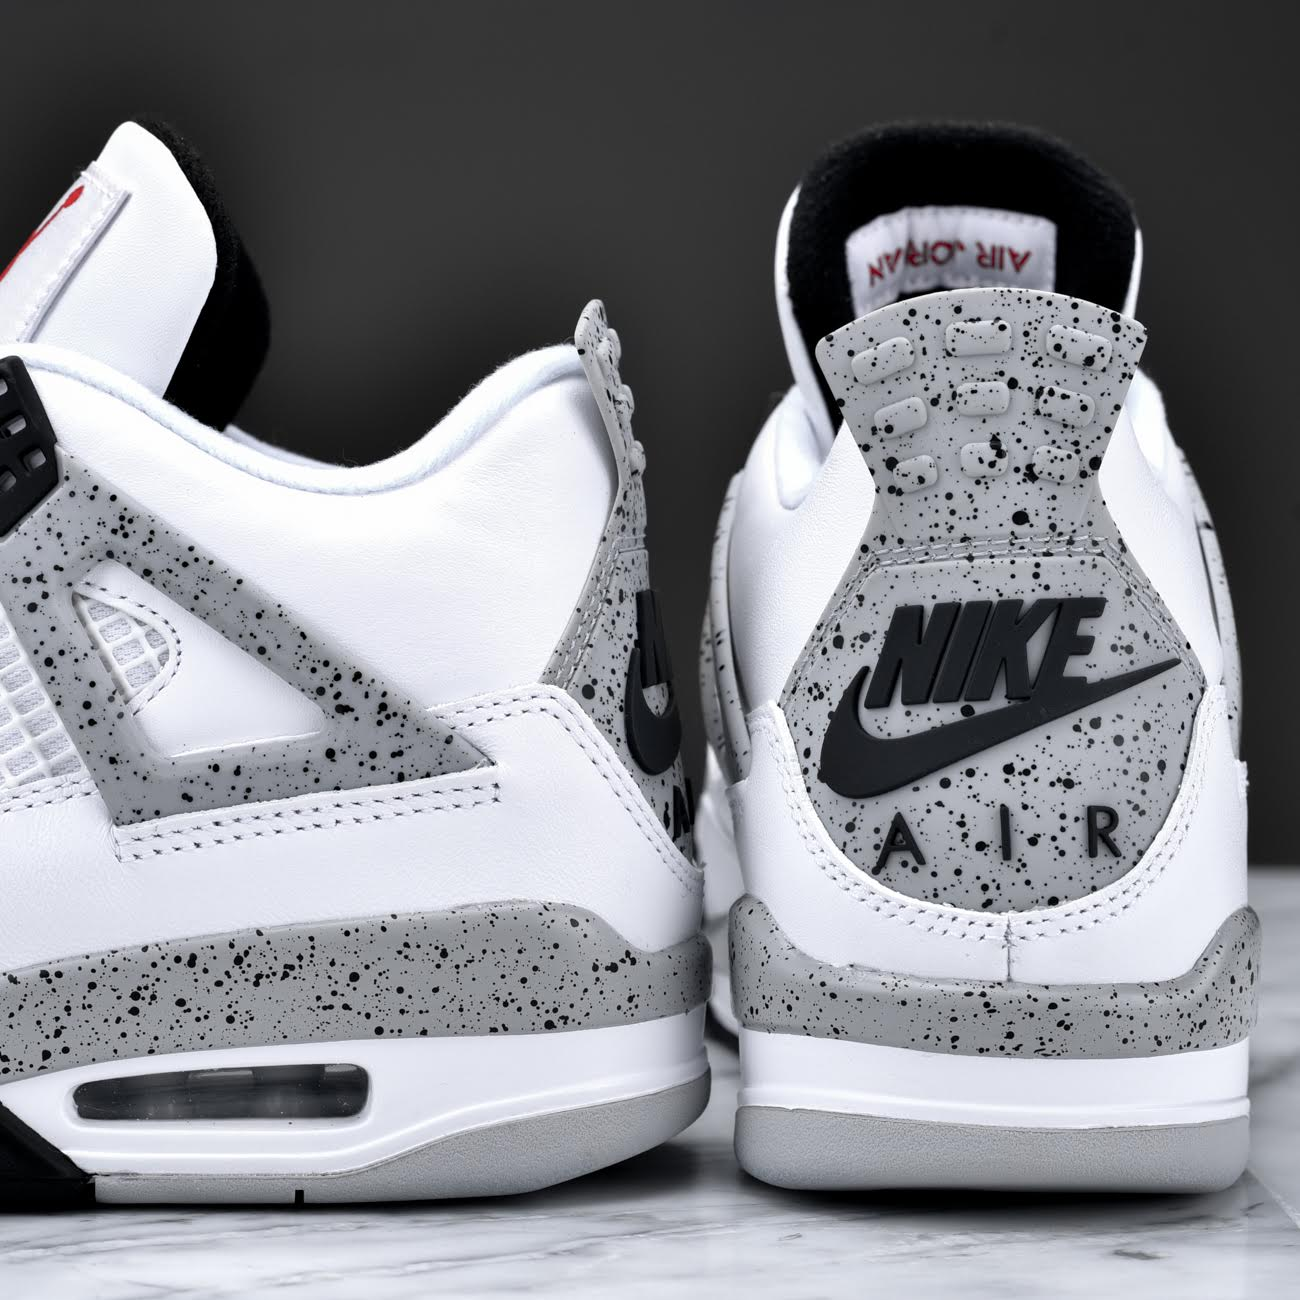 best website 281b5 e5552 ... norway your best look yet at the remastered air jordan 4 retro in white  0b341 607c2